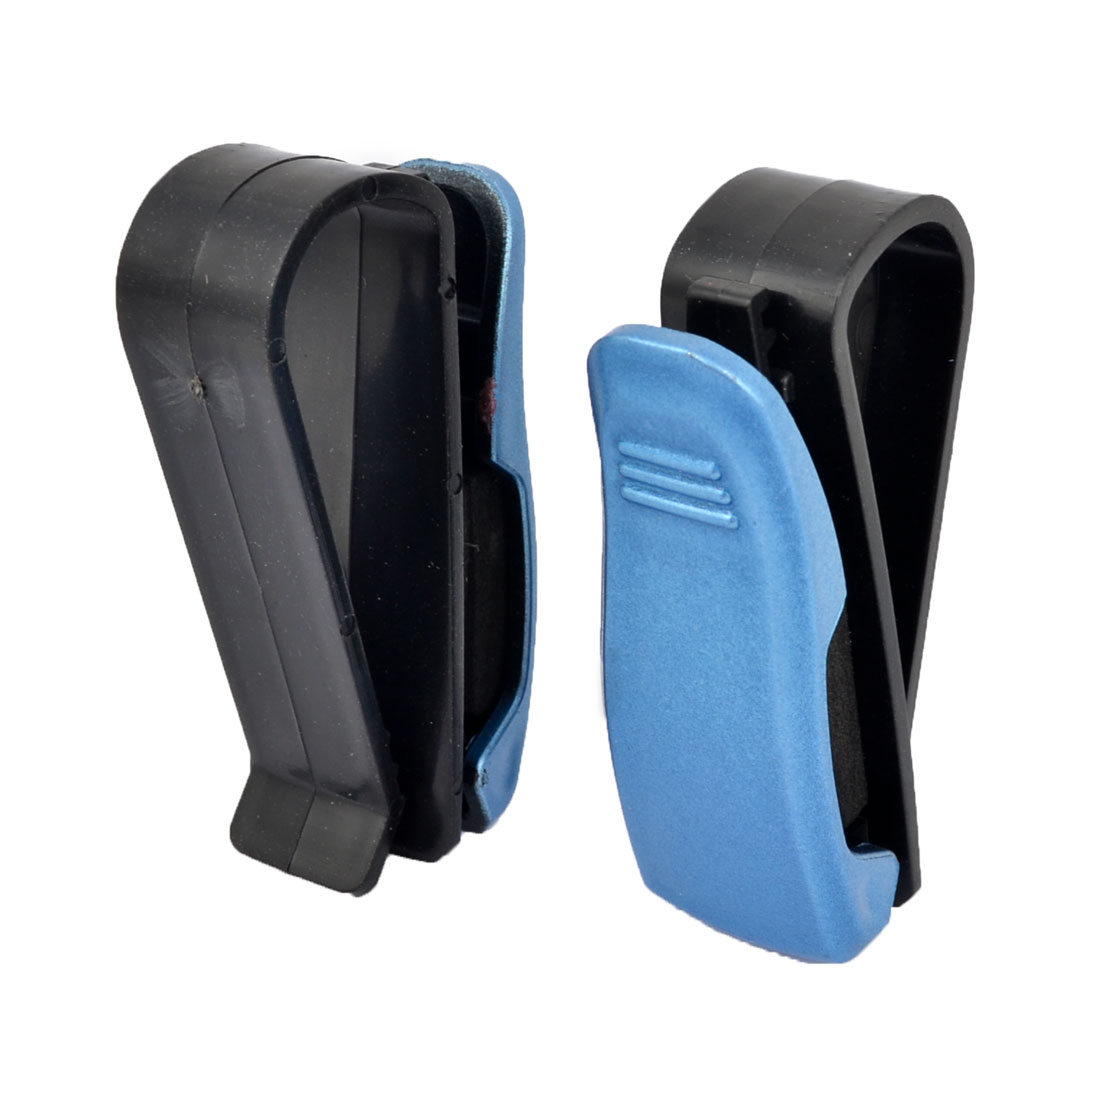 Car Vehicle Sun Visor Cards Eye Glasses Holder Clip Clamp Black Blue 2 Pcs